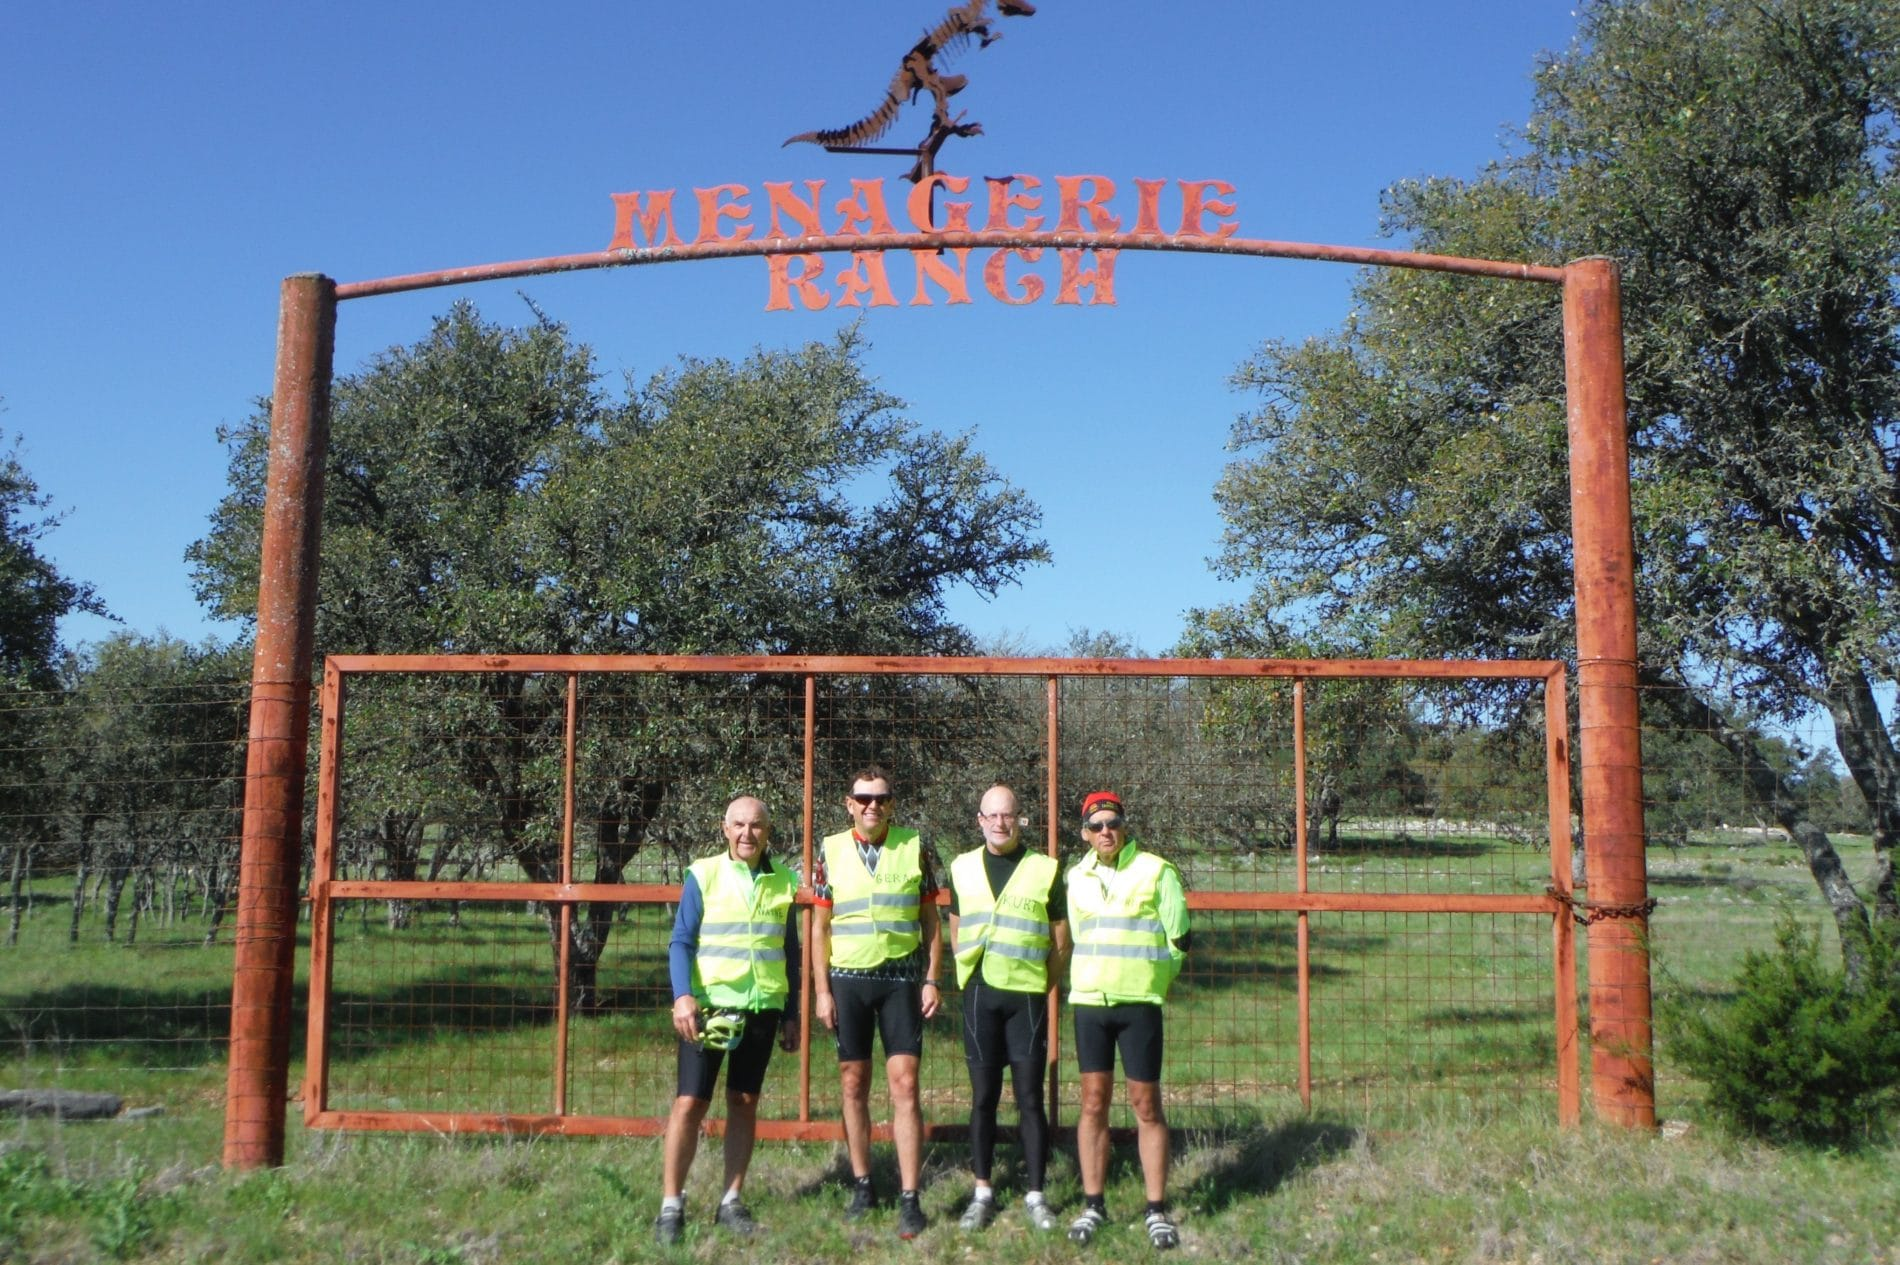 group of 4 people in front of a ranch sign